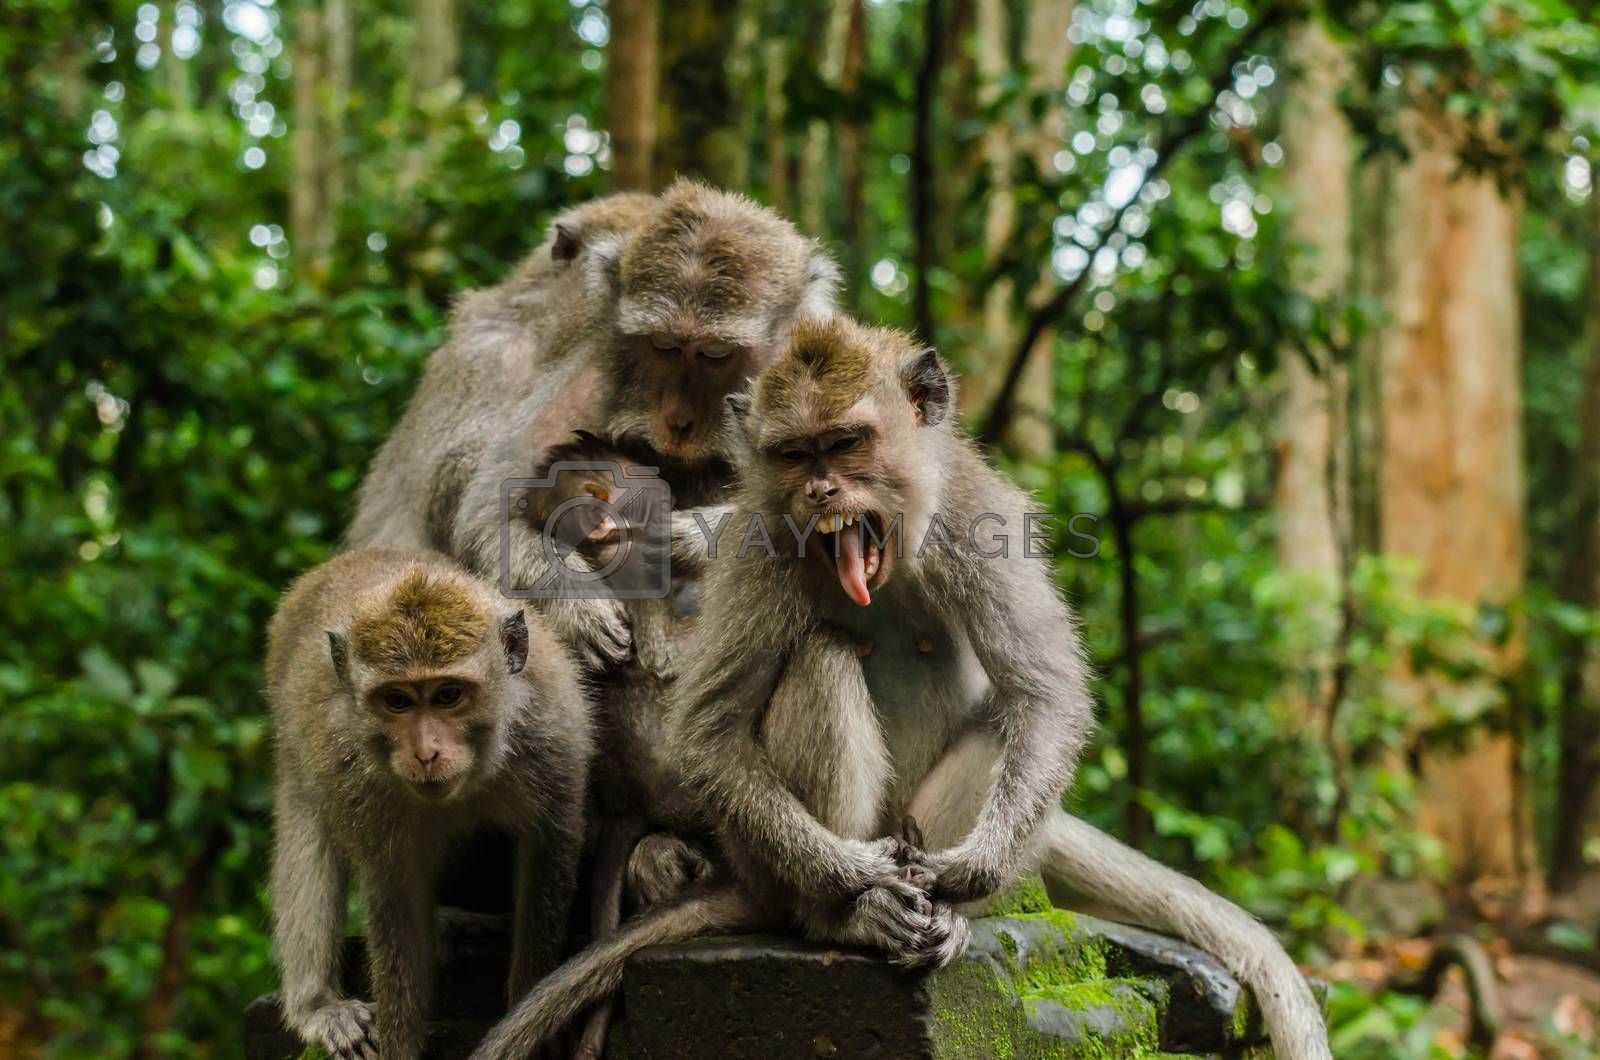 three monkeys and baby making grimaces in the temple in bali